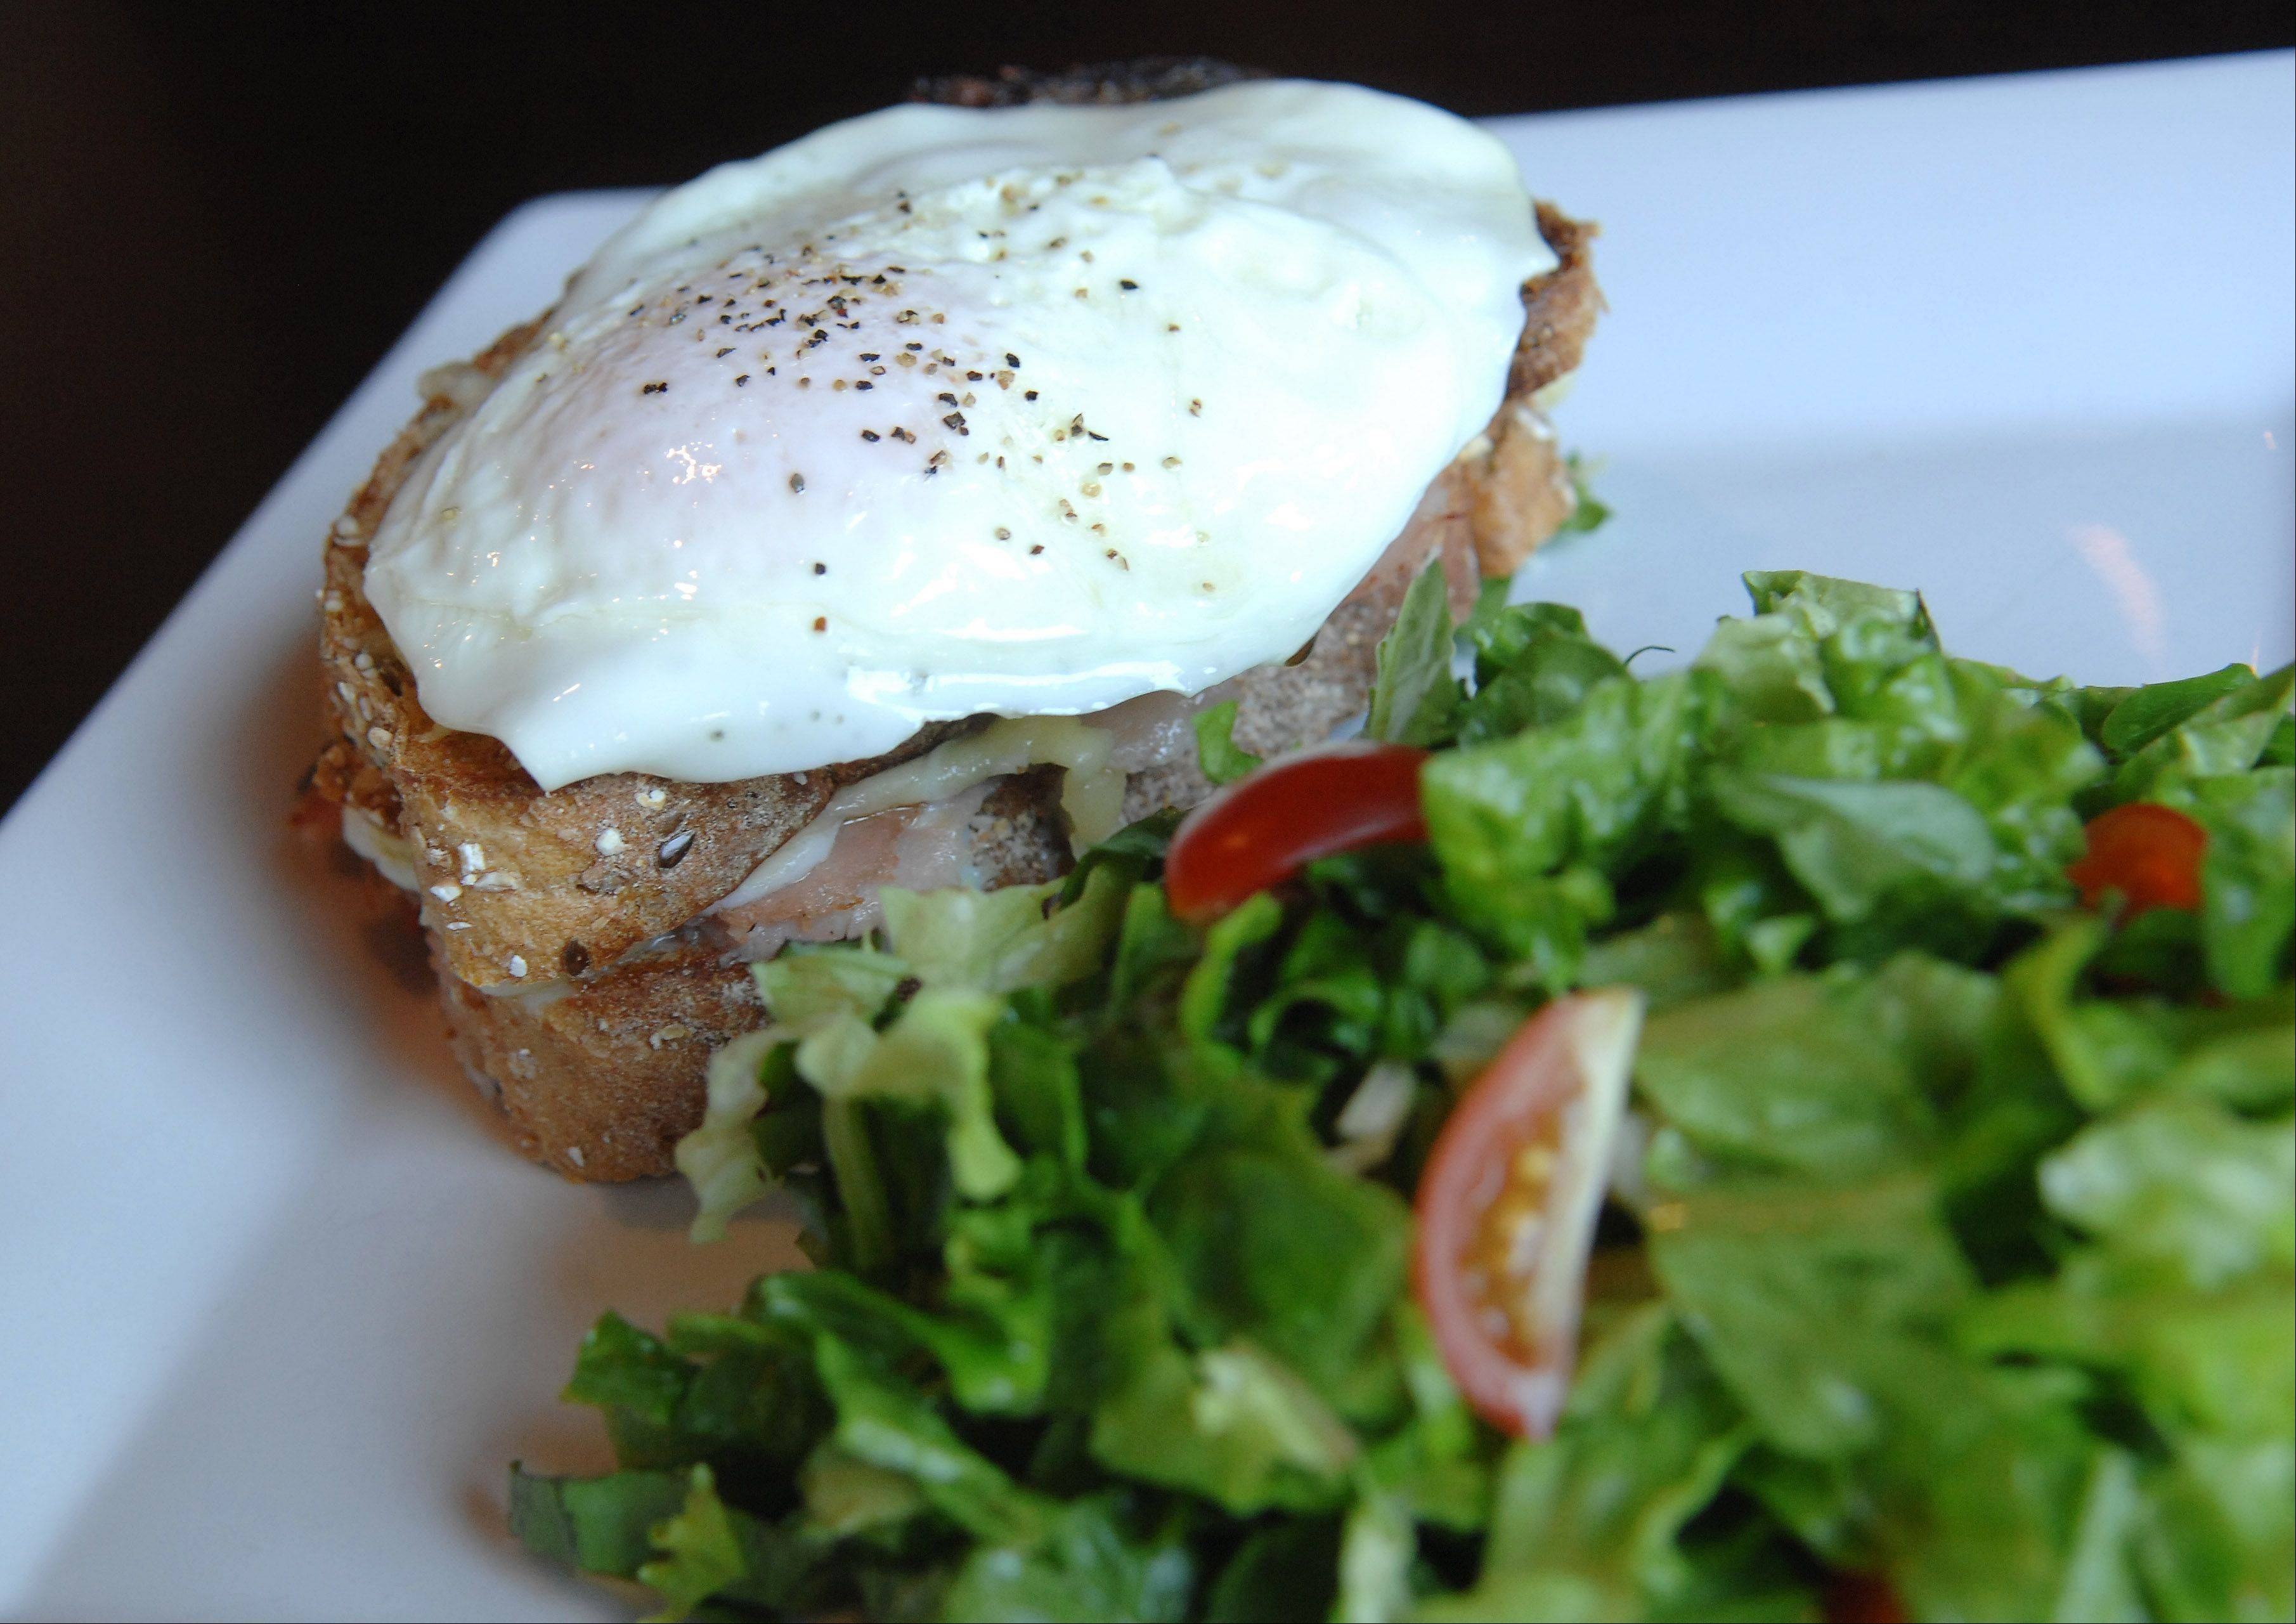 The Croque Madame sandwich at Chez Moi in Geneva is fitting for breakfast or lunch.